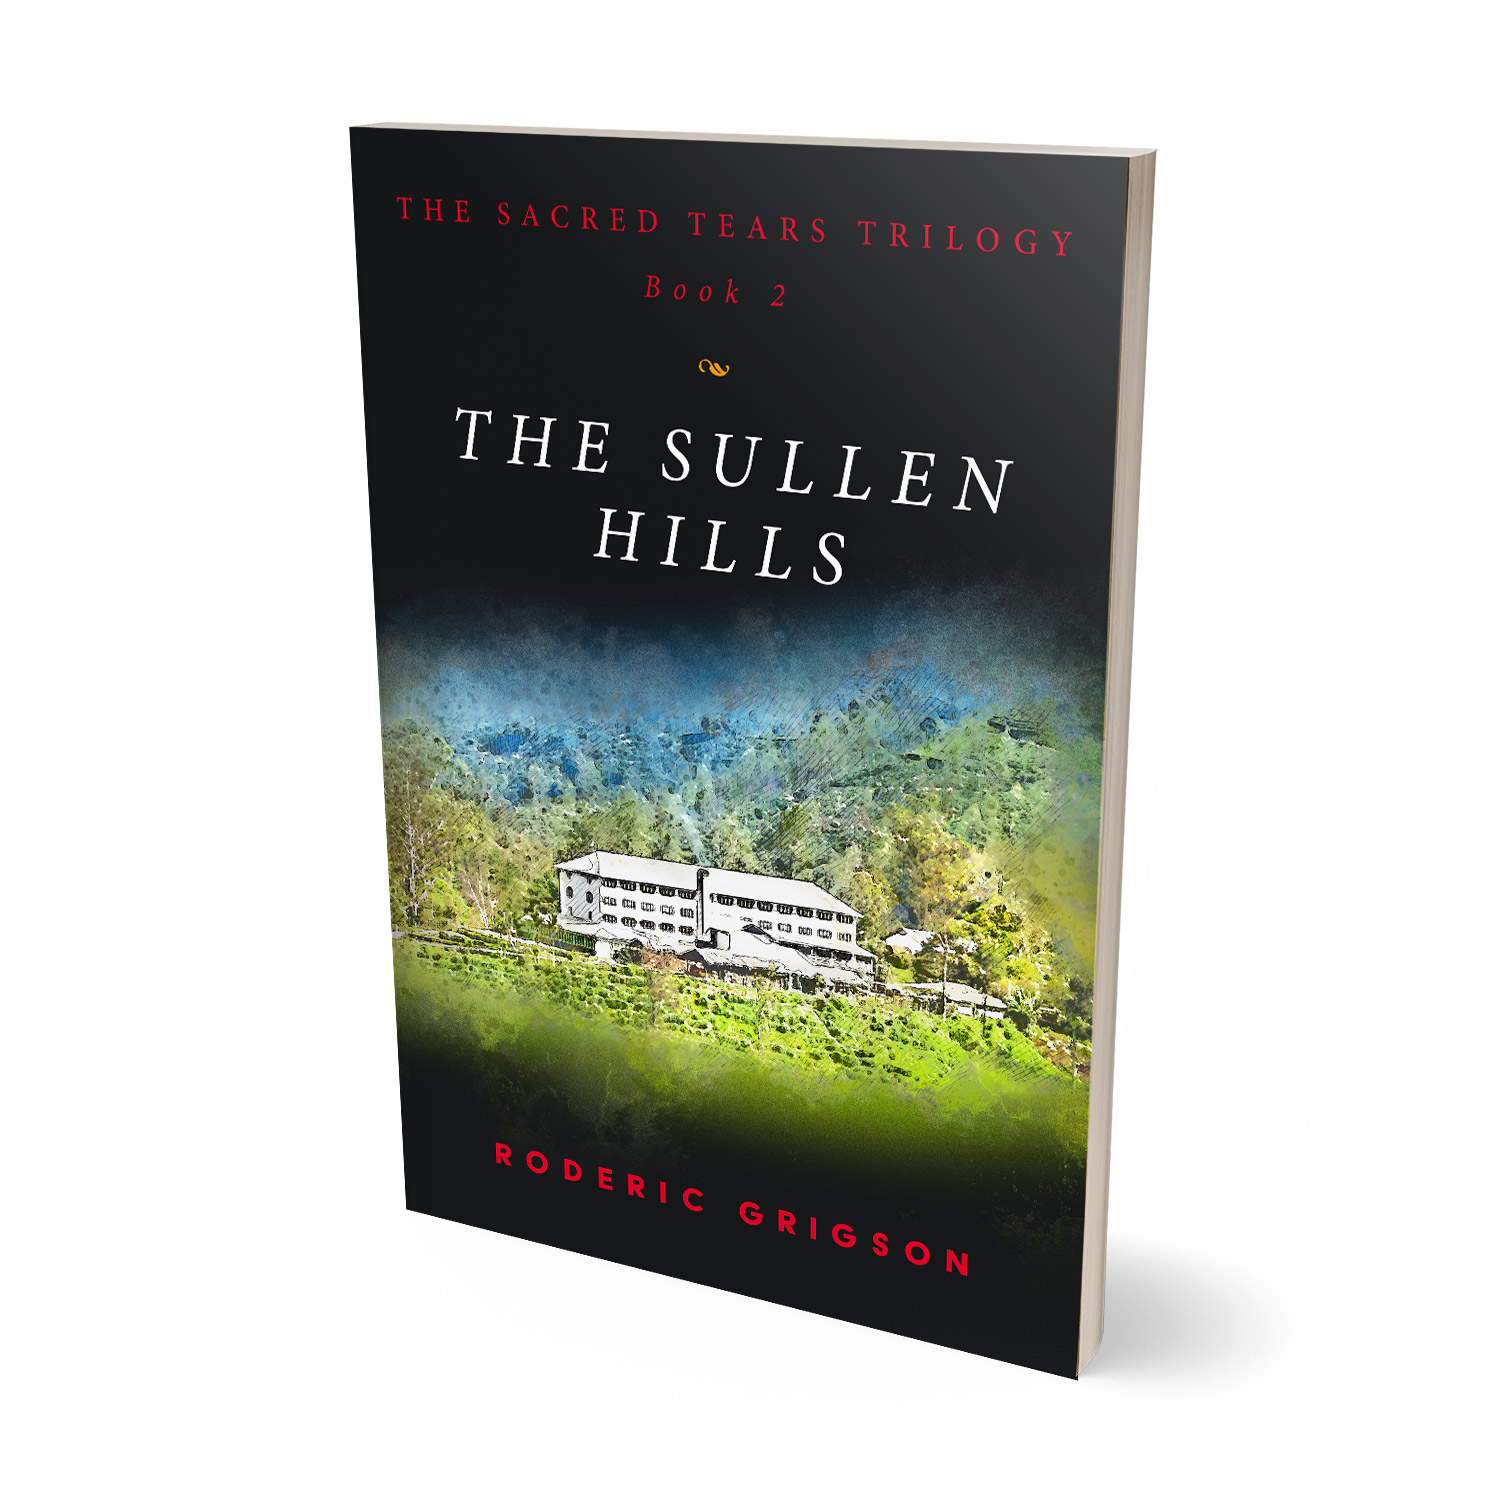 'The Sullen Hills' is the second part in a dramatic trilogy by Roderic Grigson, set during the recent Sri Lankan Civil War. The book cover and interior were designed by Mark Thomas, of coverness.com. To find out more about my book design services, please visit www.coverness.com.